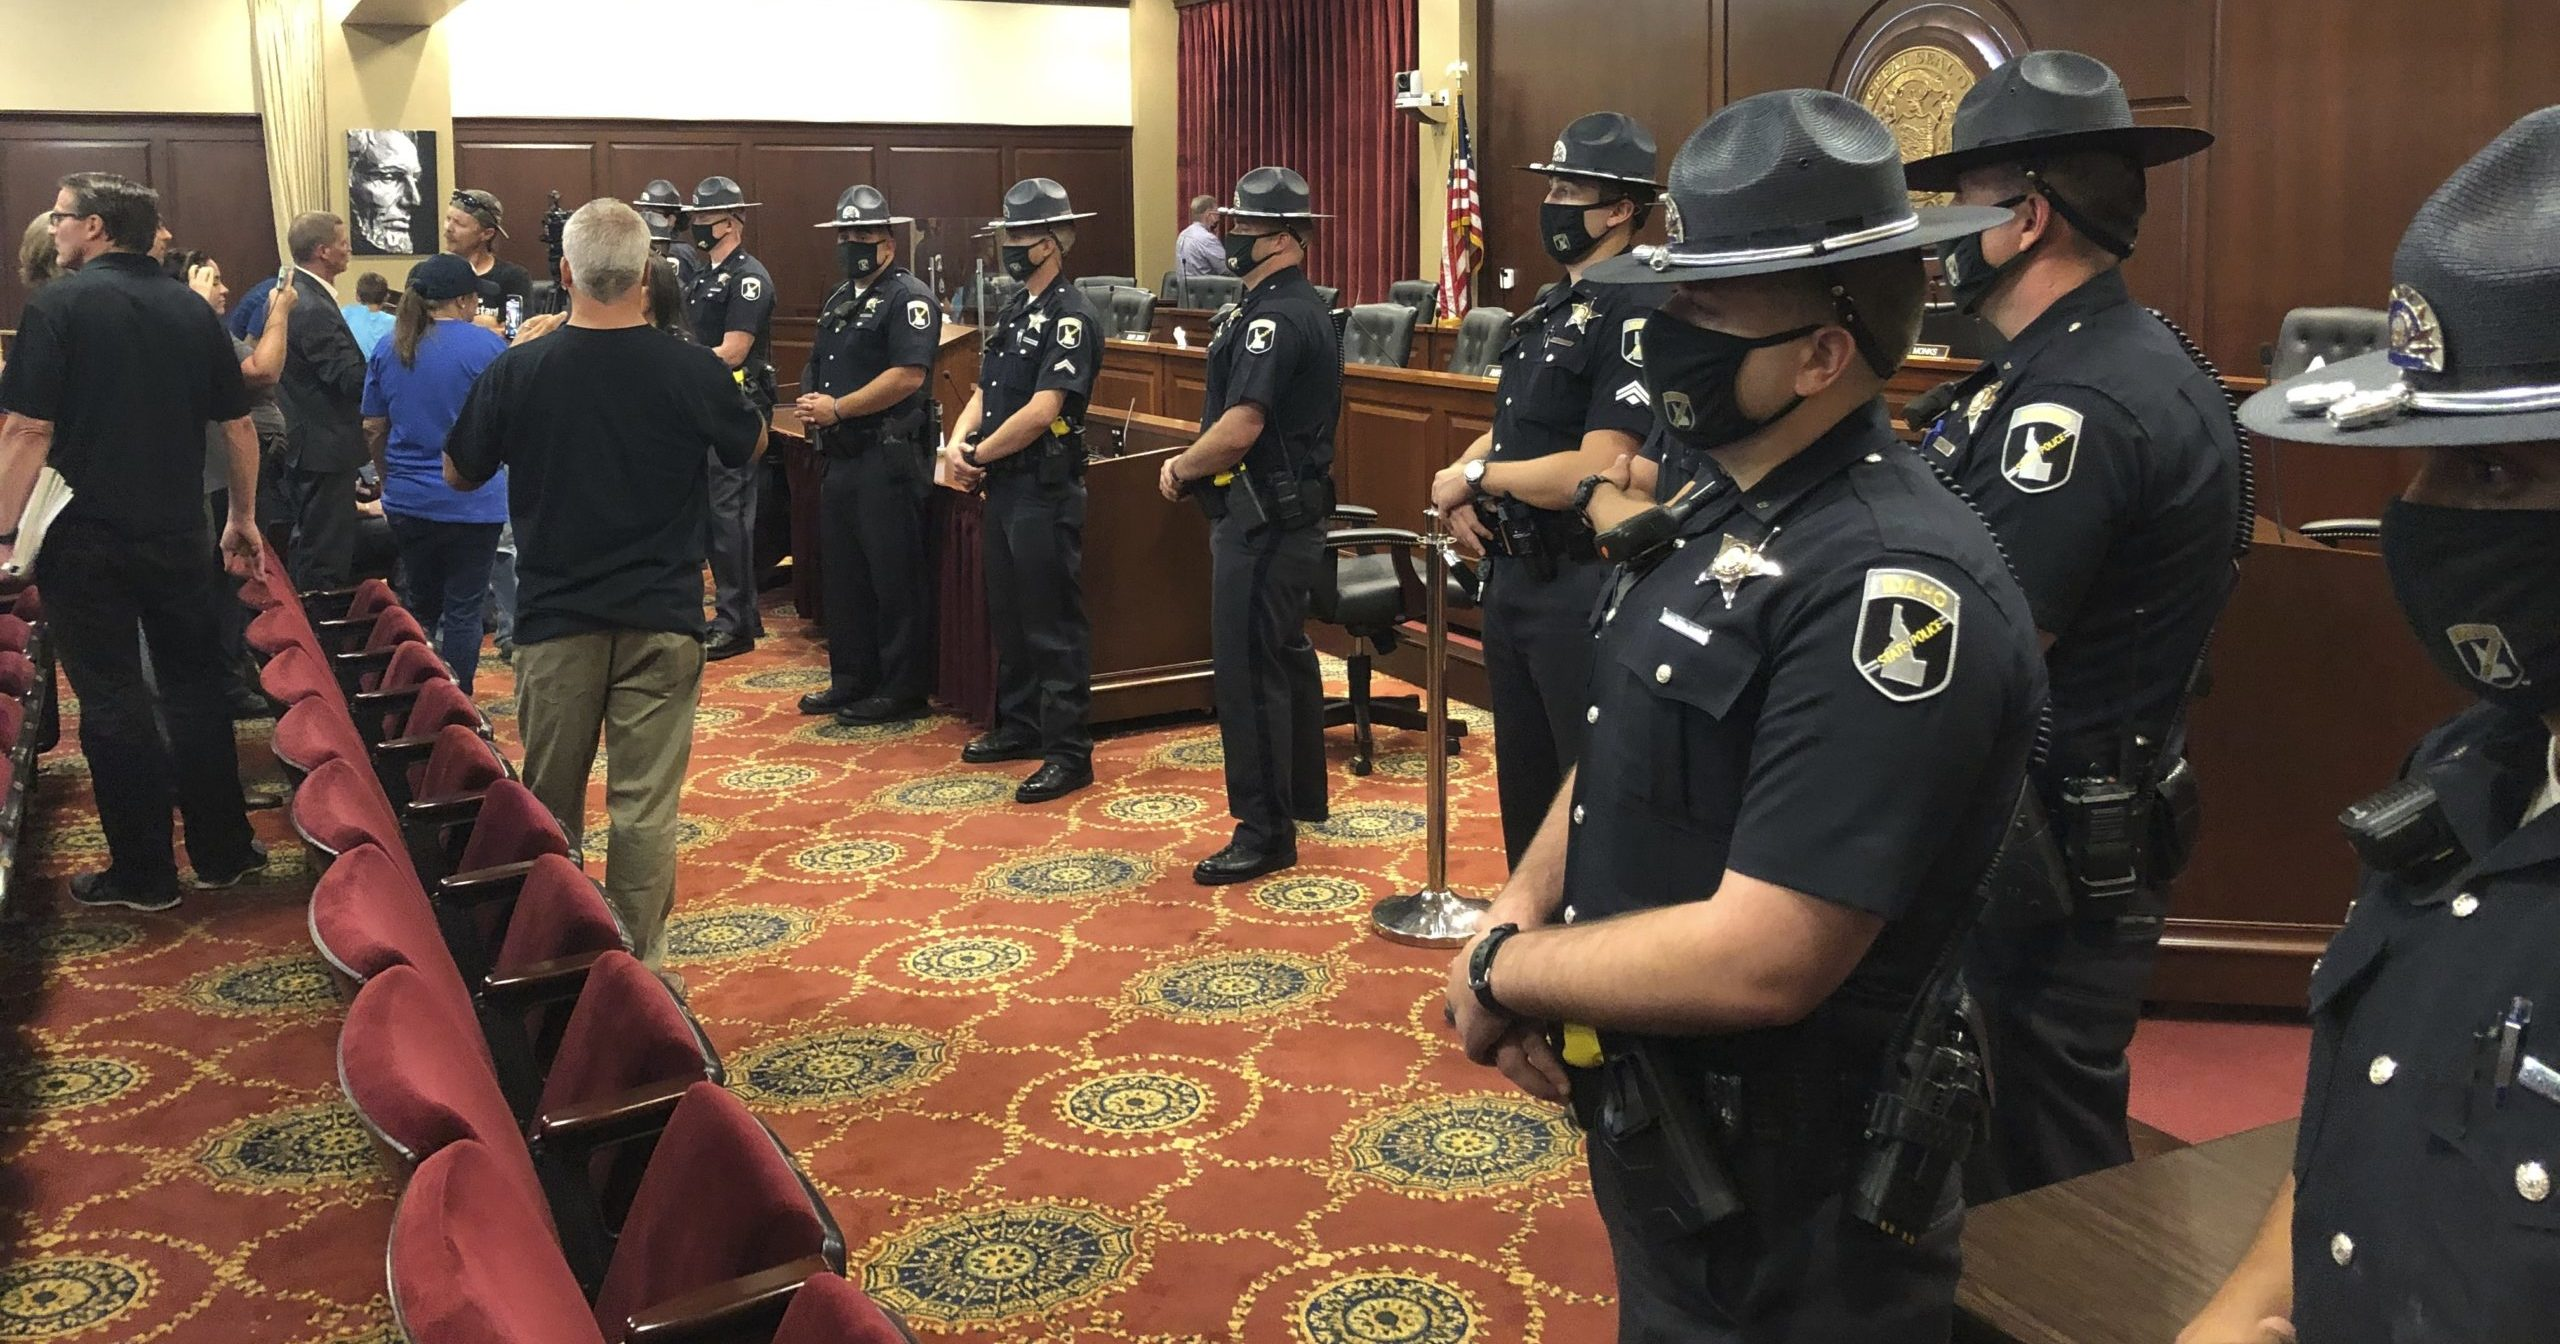 Idaho State Police stand guard in a committee meeting room in the Idaho Statehouse in Boise, Idaho, on Aug. 25, 2020. The committee left the room as a crowd of more than 100 became disruptive.